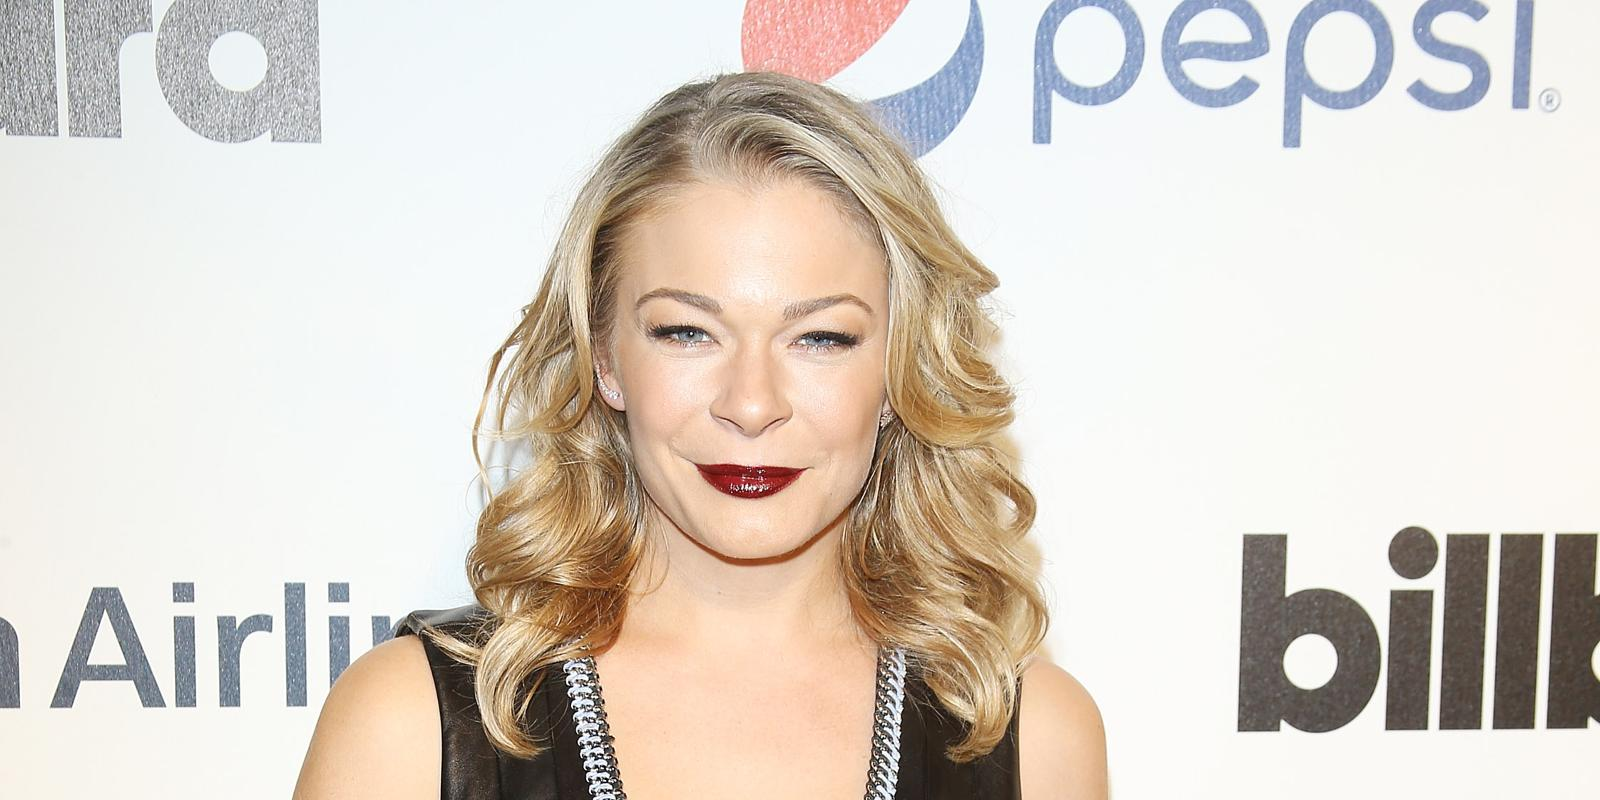 LeAnn Rimes is back with a brand new single and record deal